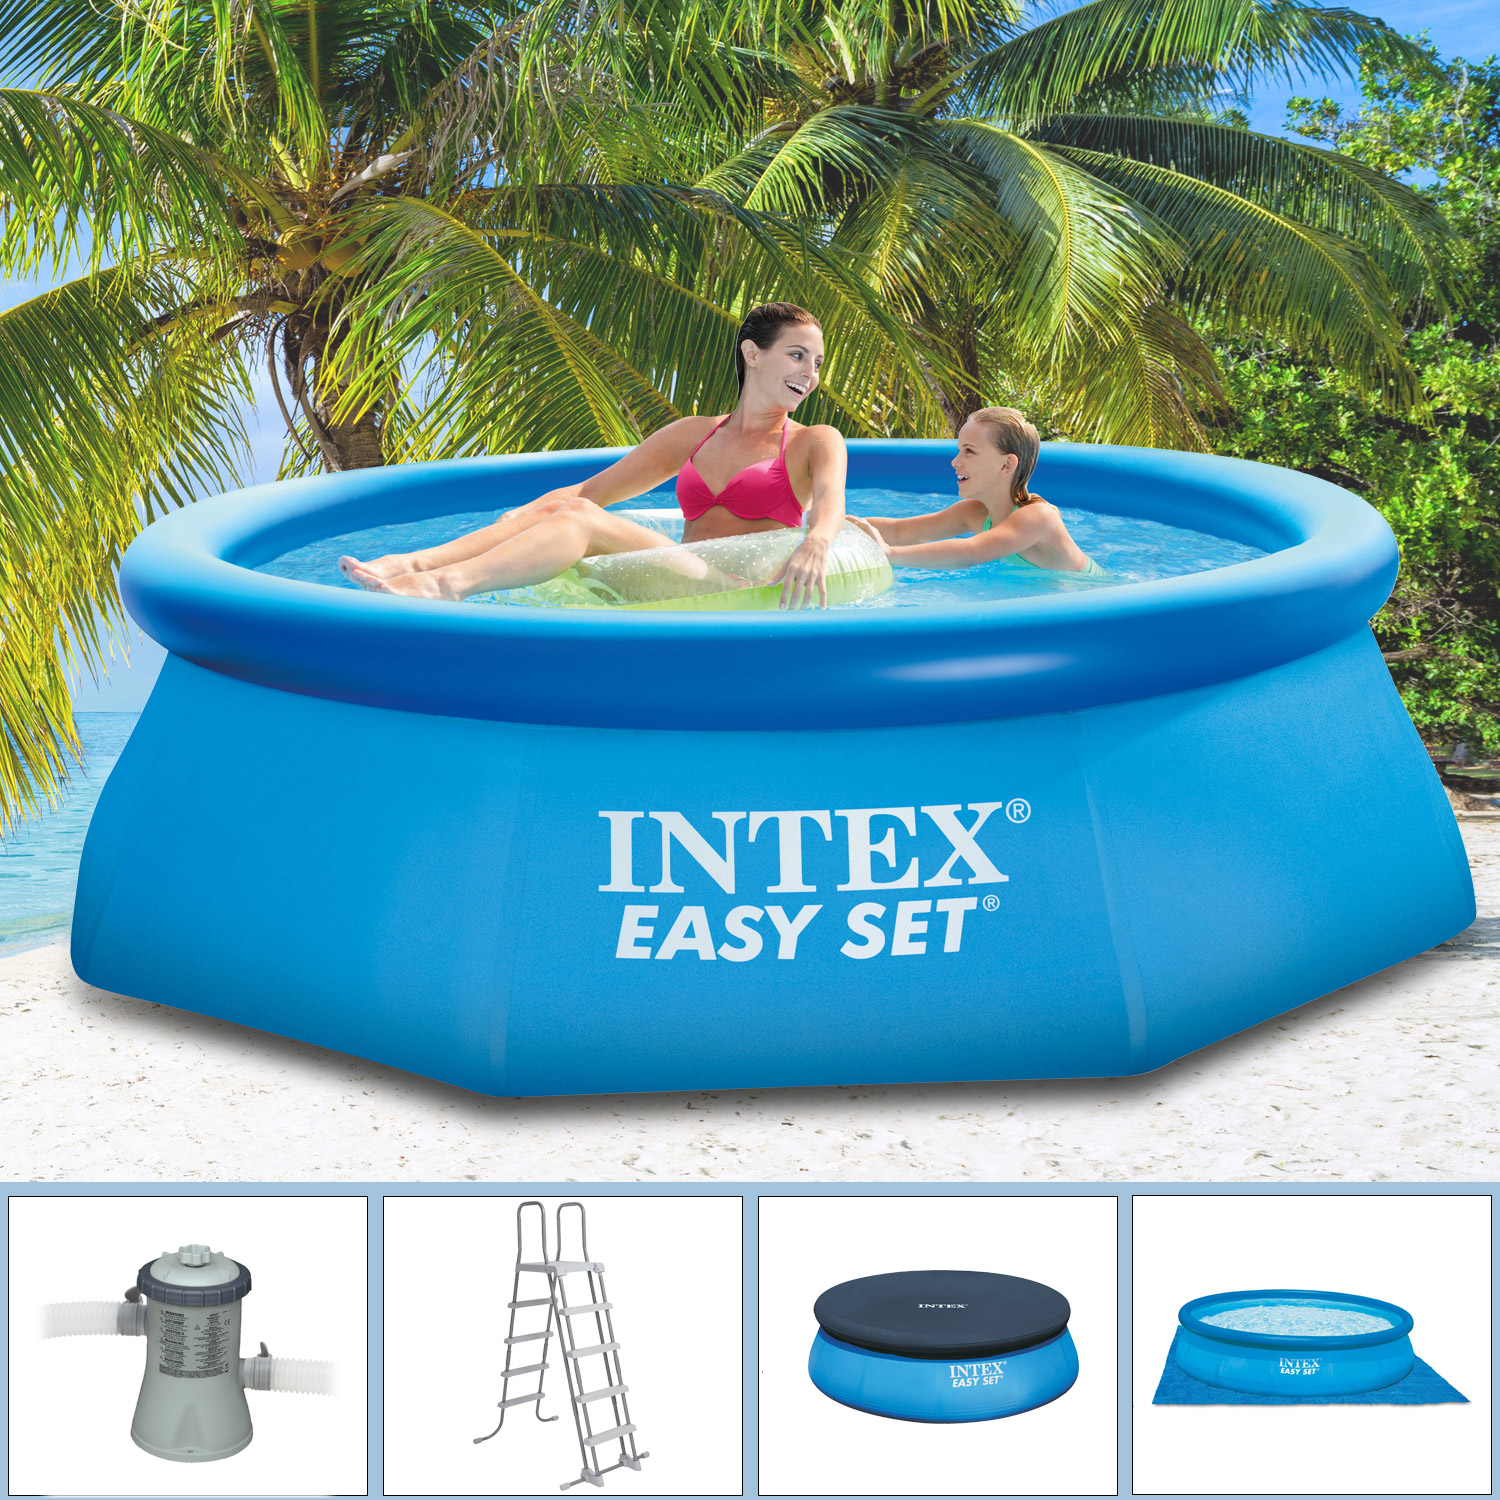 intex 244x76 komplettset schwimmbecken schwimmbad swimming. Black Bedroom Furniture Sets. Home Design Ideas